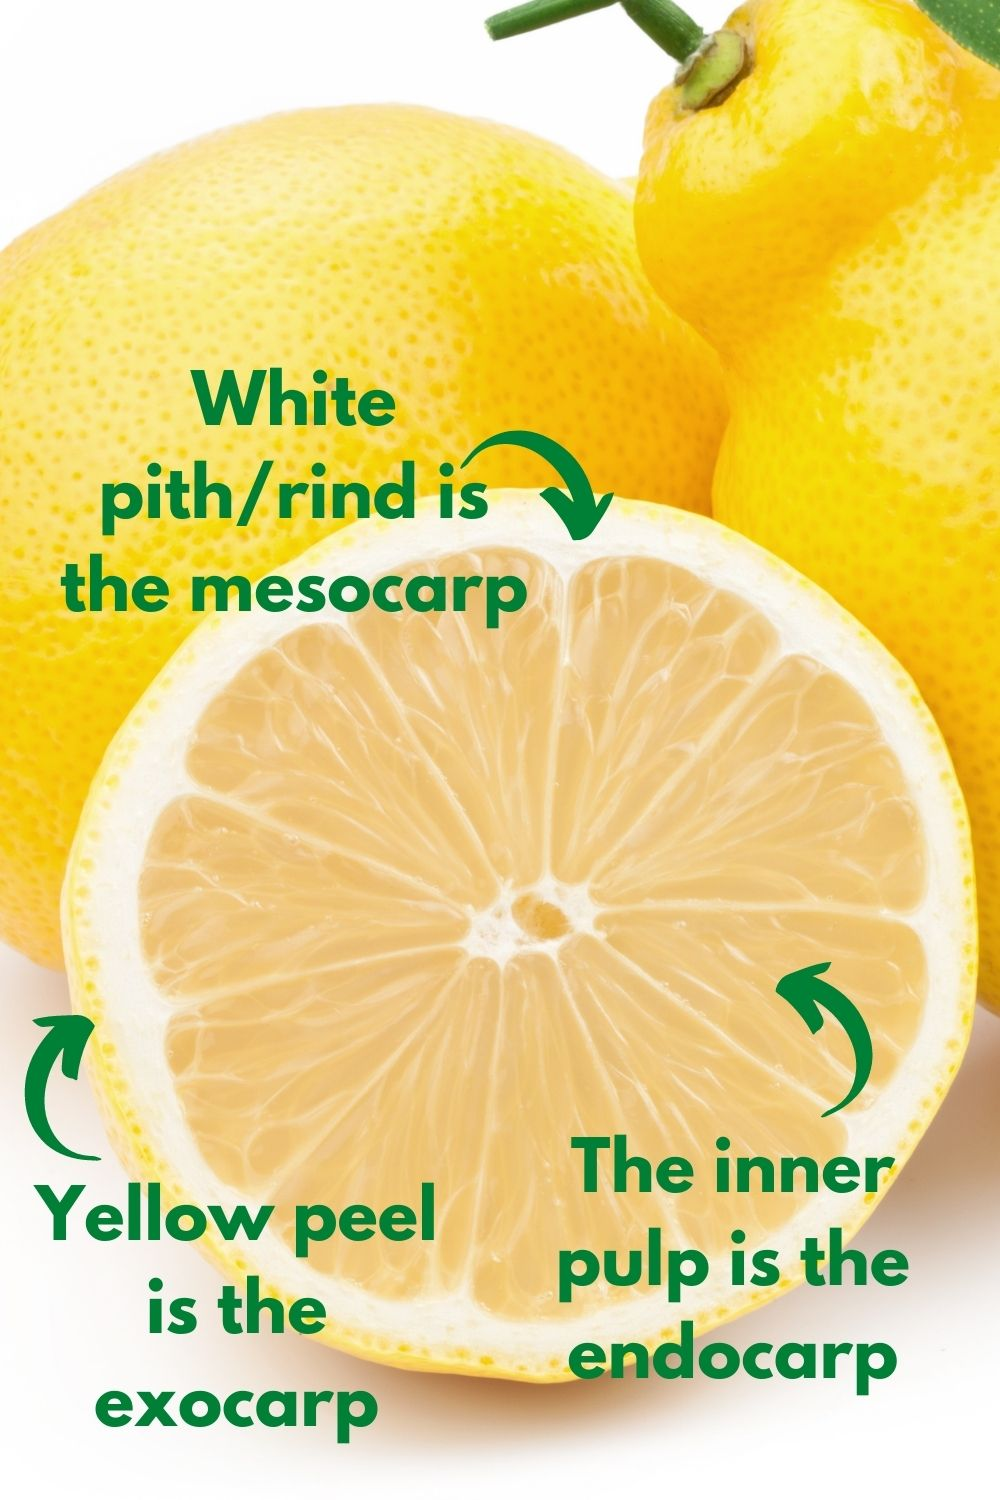 cross-section of a lemon, showing the endocarp, mesocarp, and expcarp that classify it as a berry